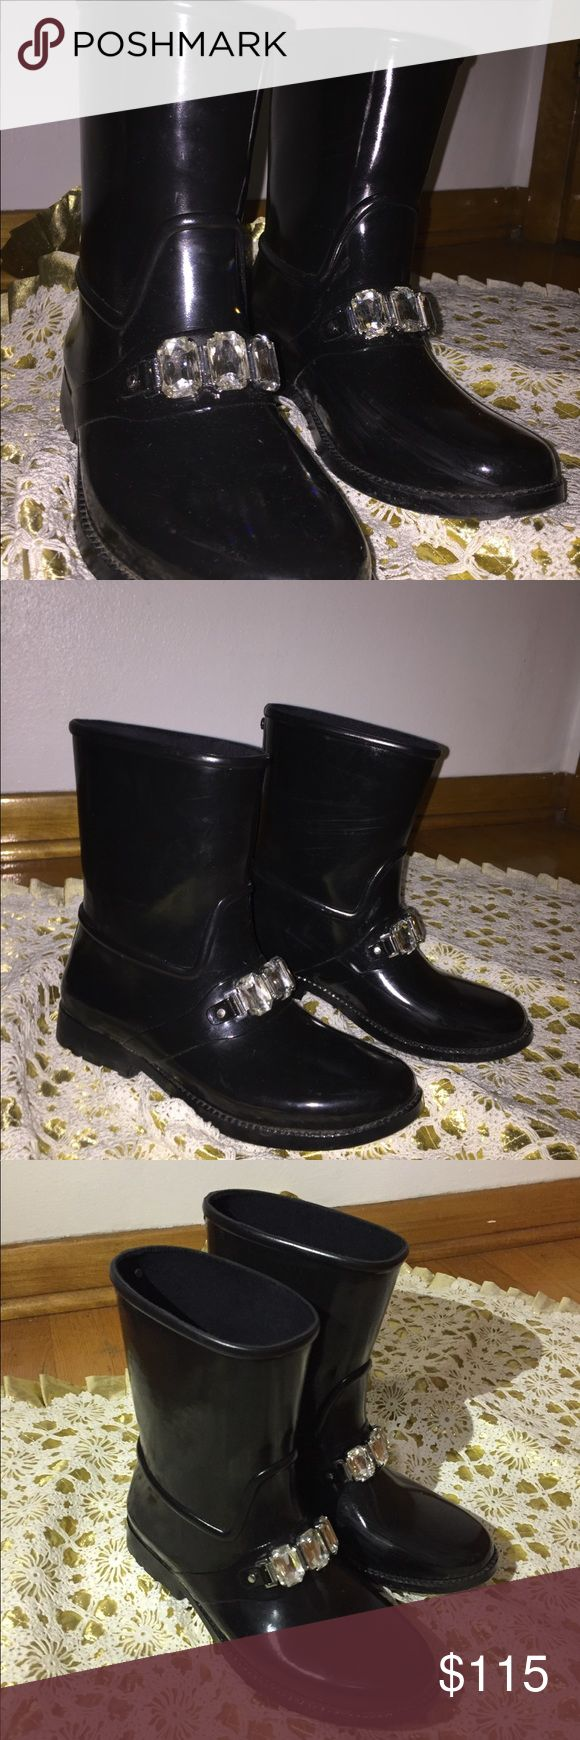 Michael Kors Leslie Embellished Rubber Rain Boots These beautiful black Michael Kors Rain Boots are very comfortable and very practical but fashionable at the same time. They look great with anything you wear; the crystals make them cute enough for everyday. I have barely worn them so they are like-new. Please don't hesitate to ask me any questions. I am also accepting offers. Michael Kors Shoes Winter & Rain Boots